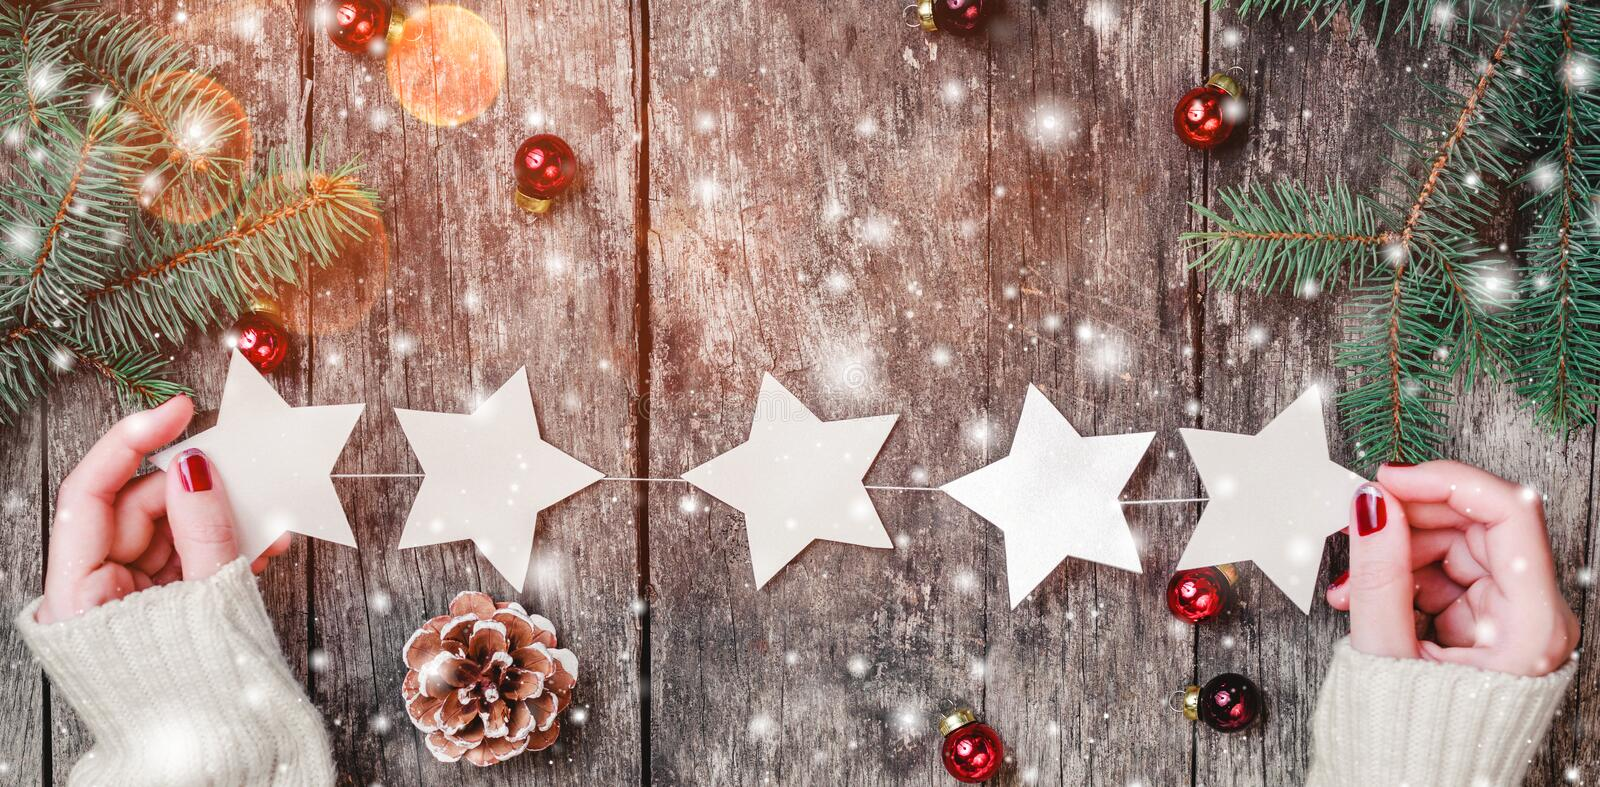 Female hands holding Christmas garland of stars on wooden background with Christmas gifts, Fir branches, red decorations. stock images